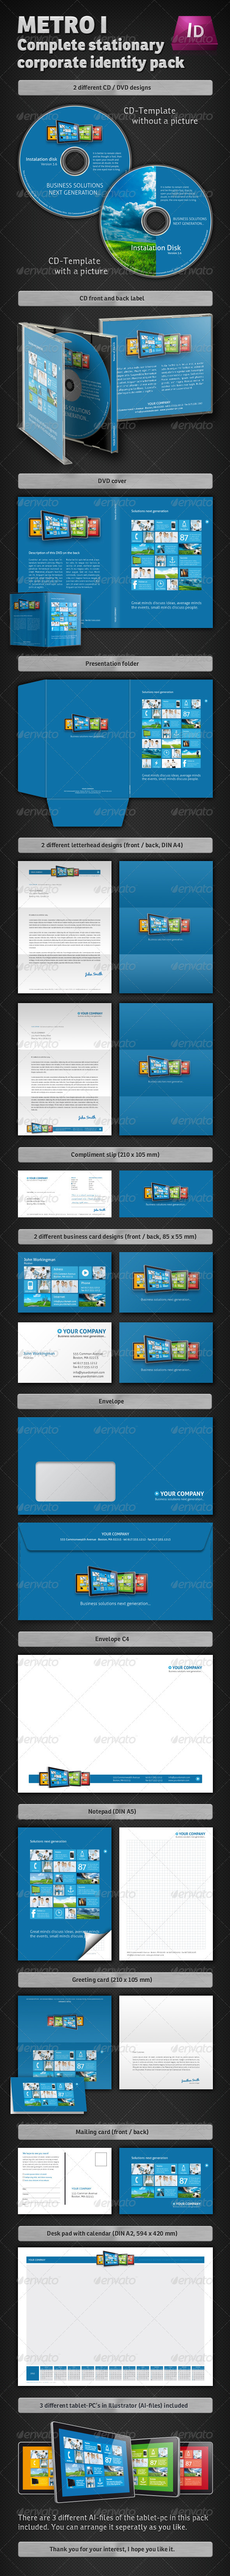 Metro I Corporate Identity Stationary Pack - Stationery Print Templates